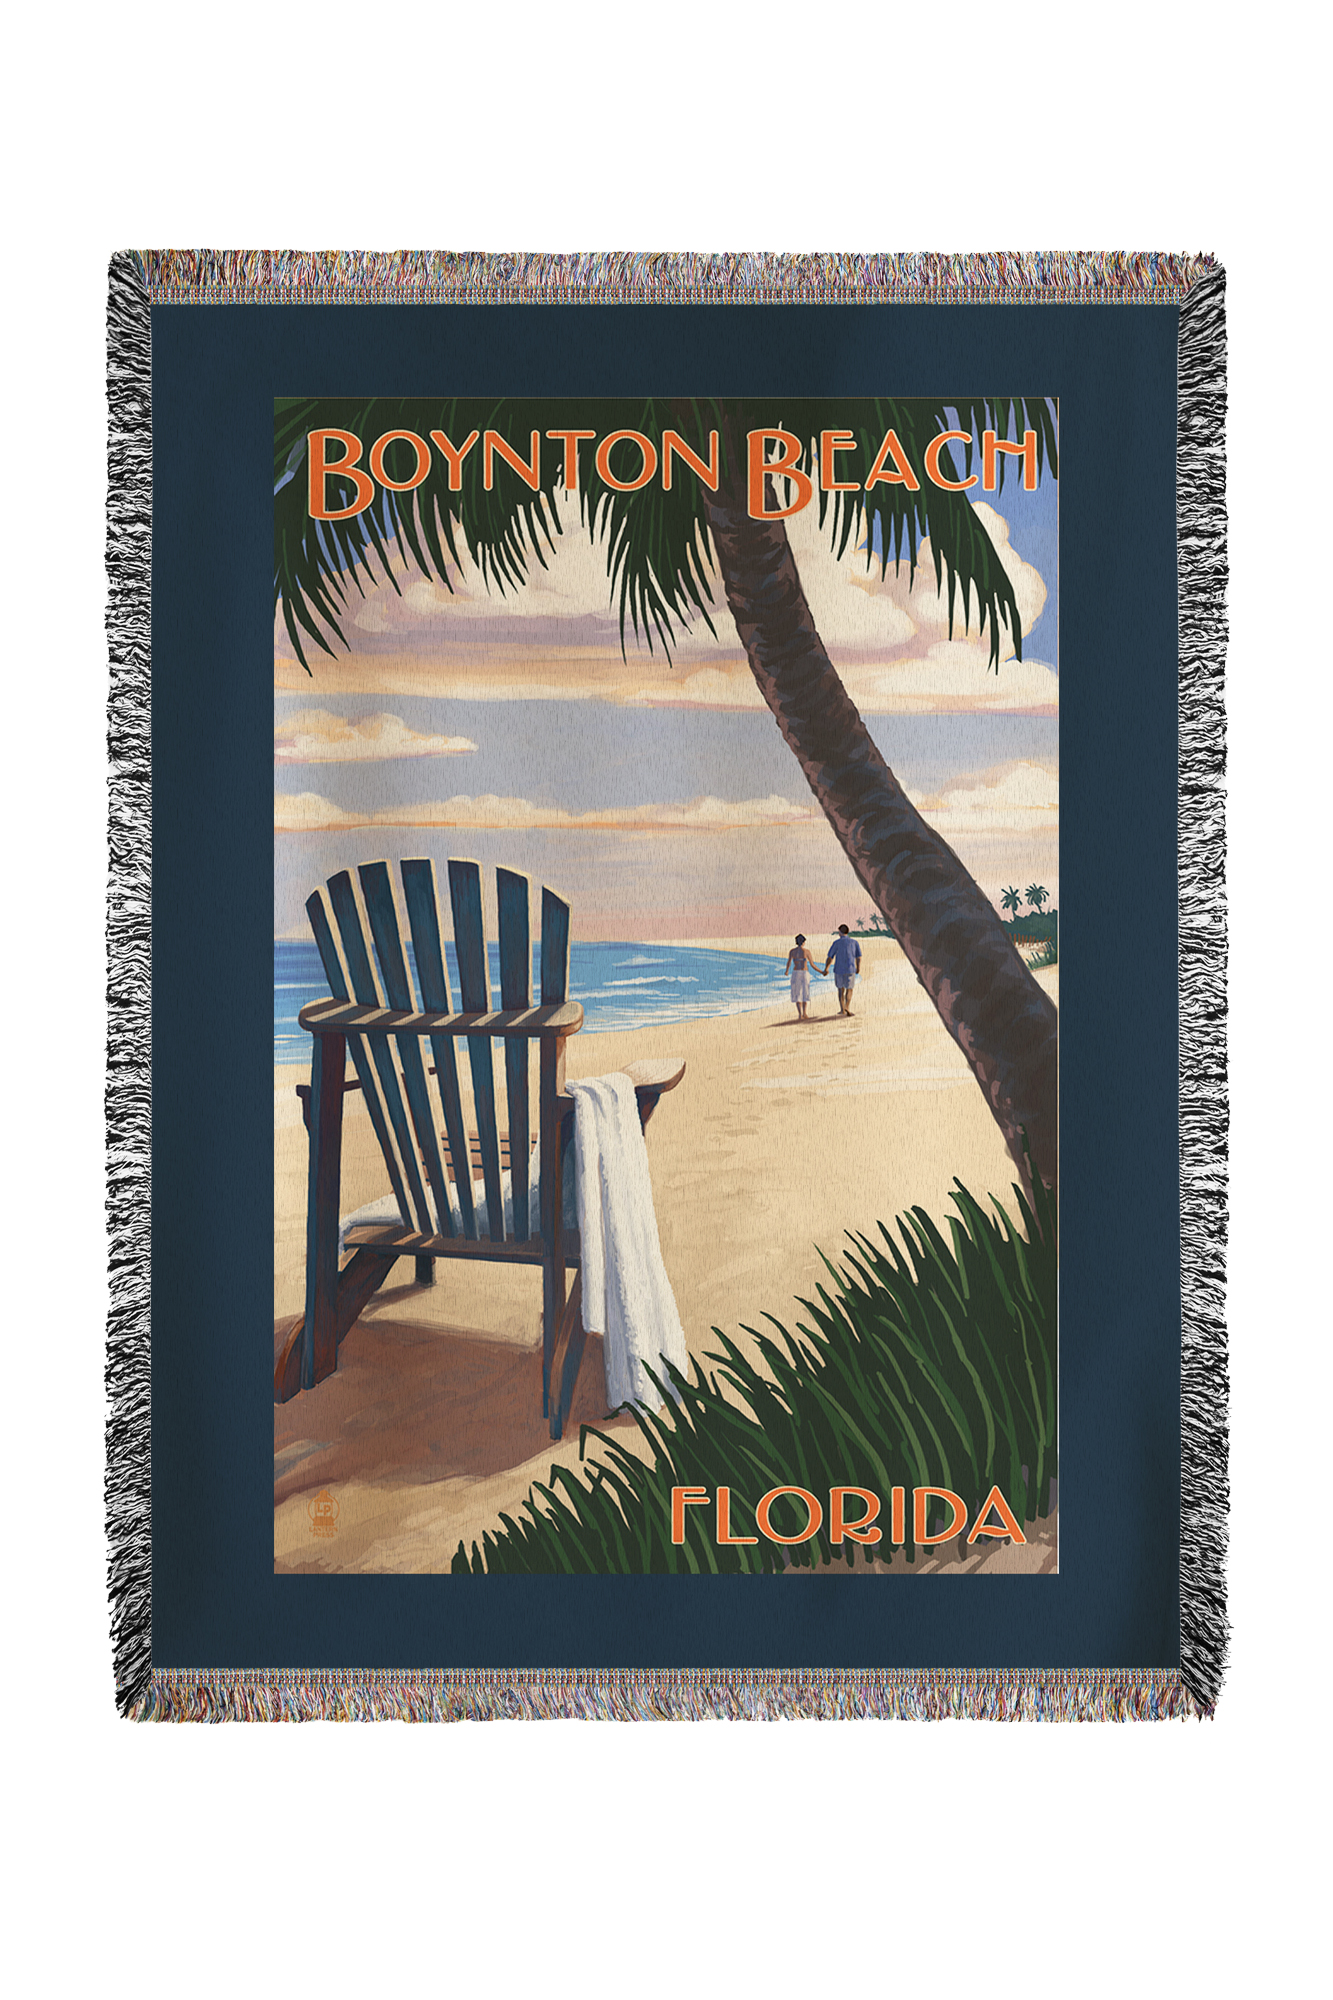 Boynton Beach, Florida Adirondack Chair on the Beach Lantern Press Poster (60x80 Woven Chenille Yarn Blanket) by Lantern Press